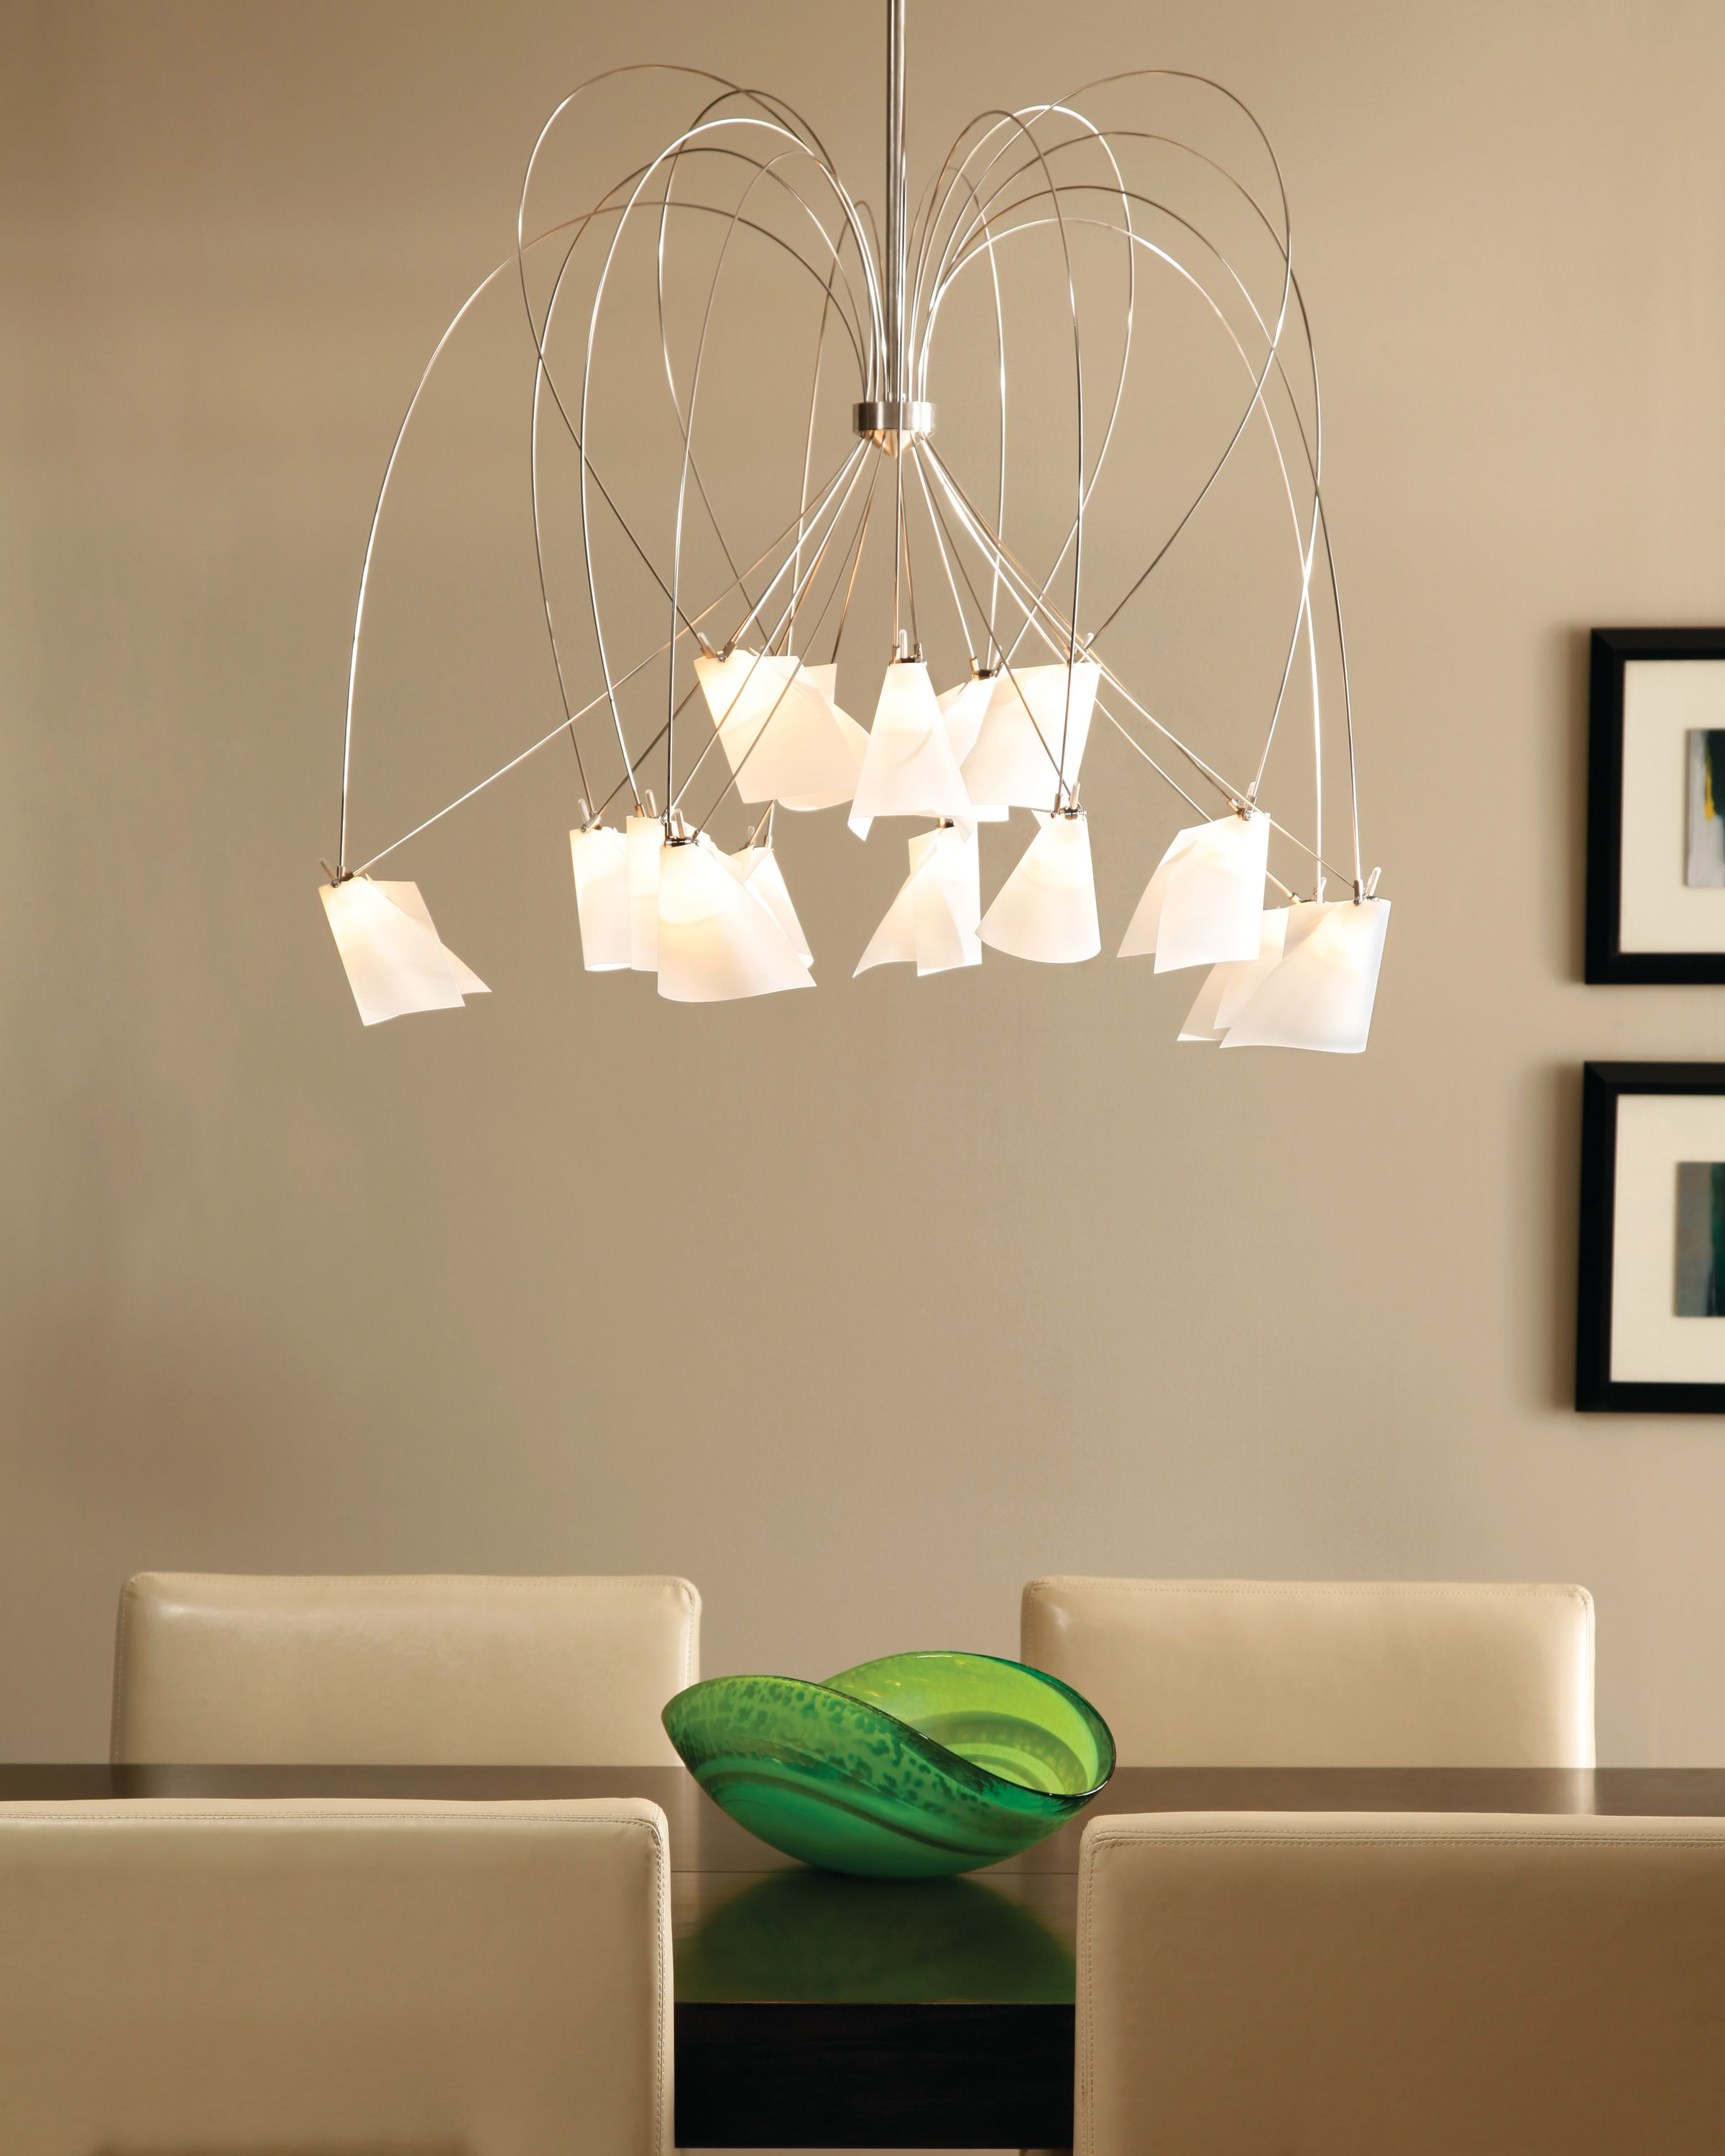 whimsical lighting fixtures. Rhapsody From Tech Lighting Has Fifteen Whimsical Arms Surrounding Its Central Core. Each End Is Fixtures